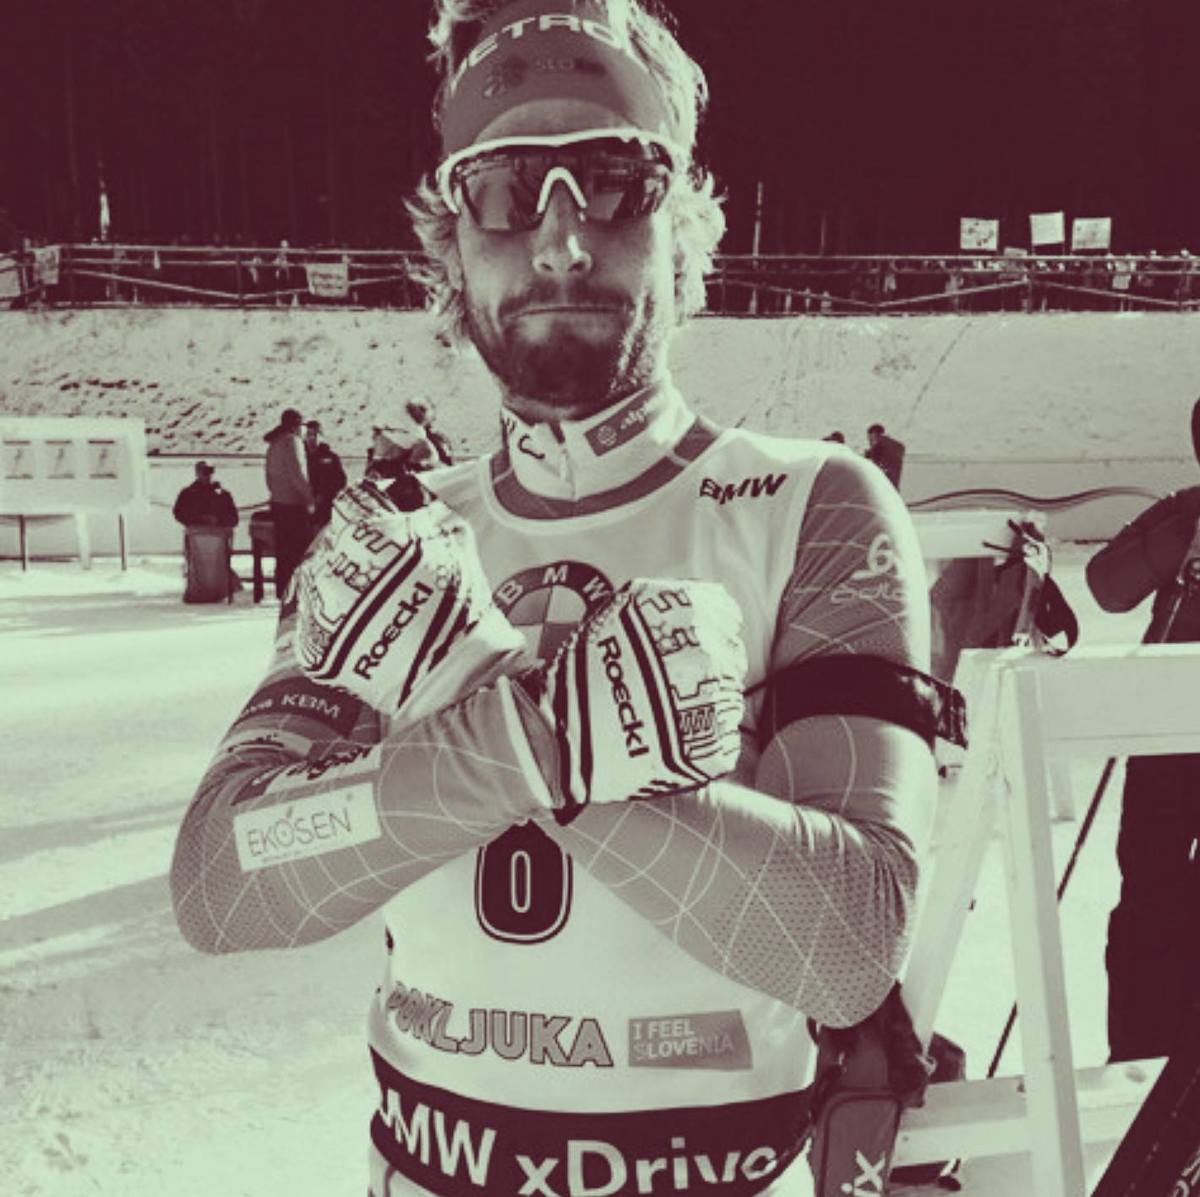 Klemen after a great race at Pokljuka.